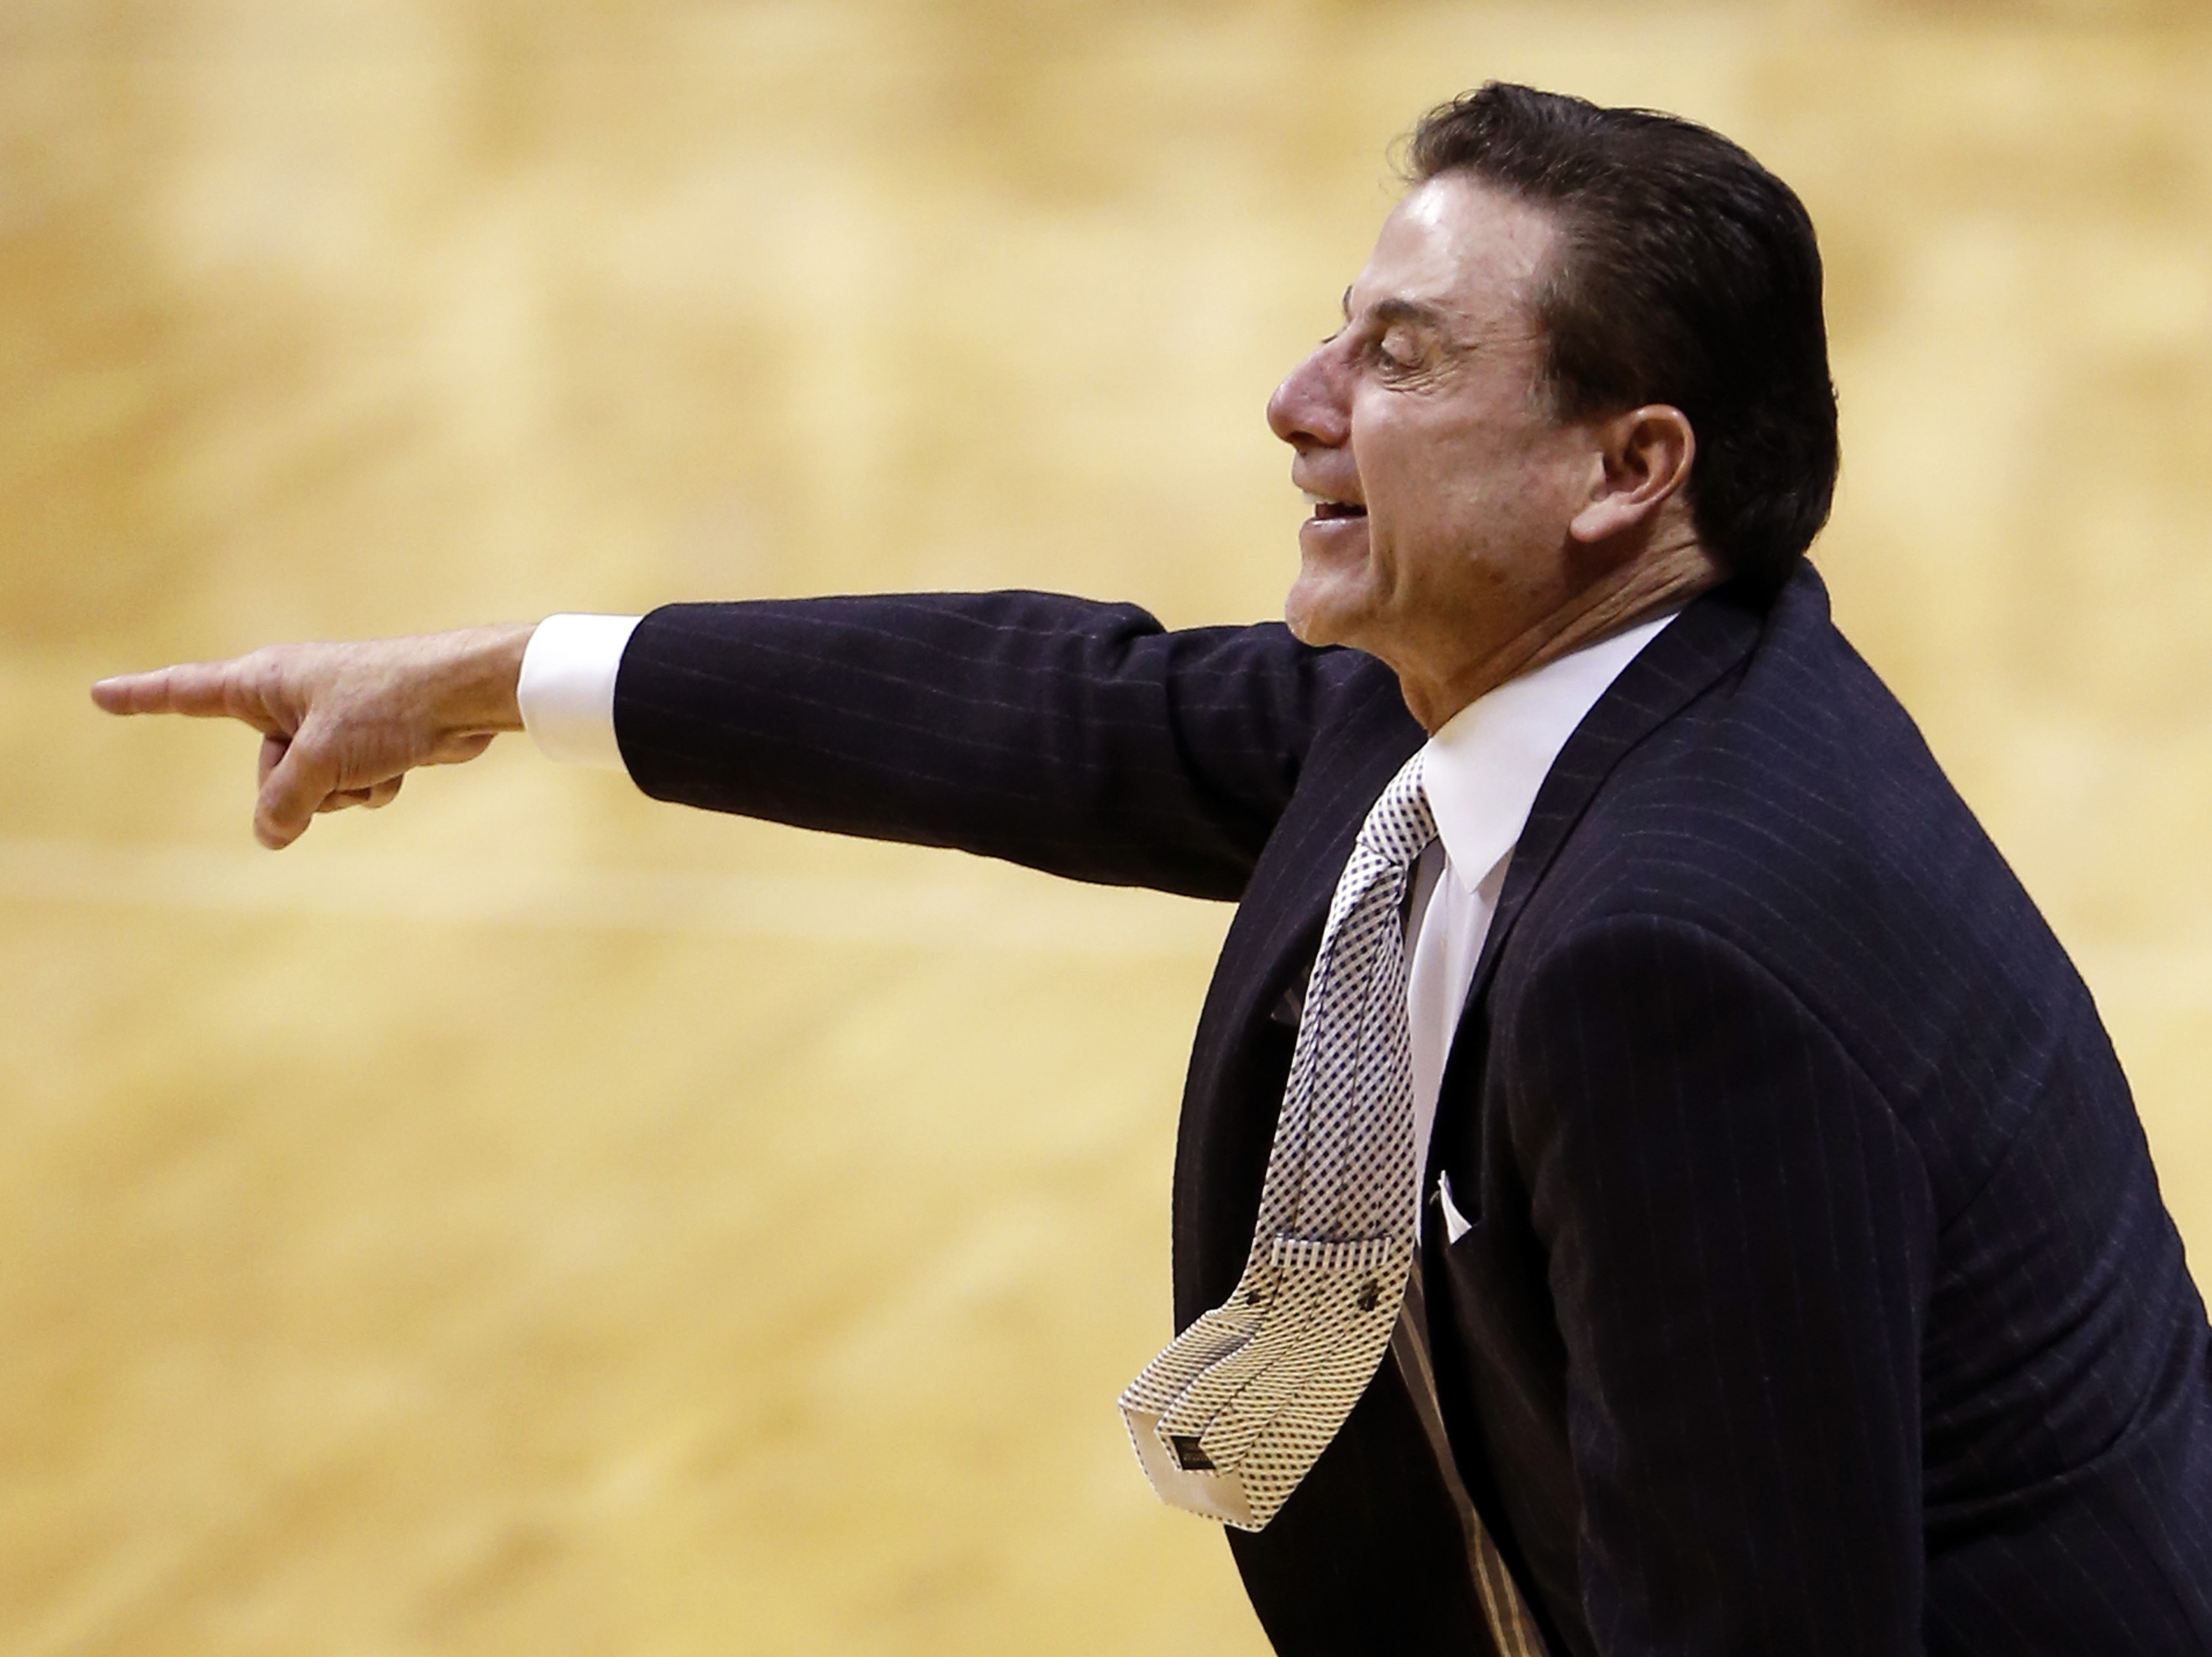 Louisville head coach Rick Pitino gives instructions to his team during the second half of an NCAA college basketball game against Pittsburgh, Wednesday, Feb. 24, 2016, in Pittsburgh. Louisville won 67-60. (AP Photo/Keith Srakocic)